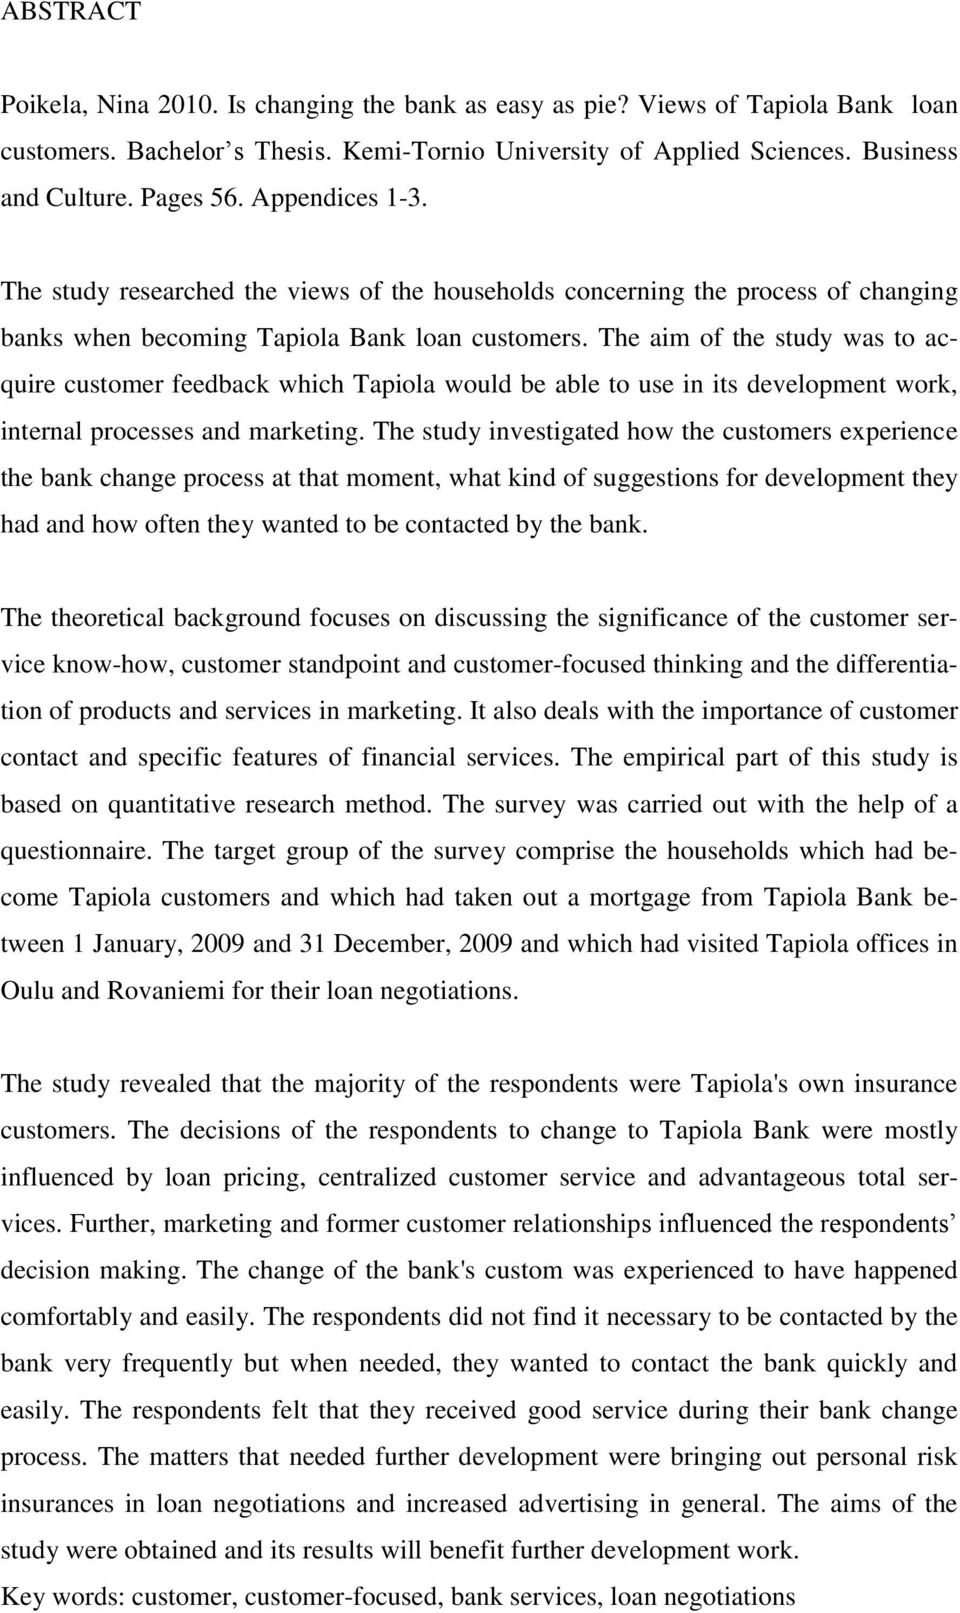 The aim of the study was to acquire customer feedback which Tapiola would be able to use in its development work, internal processes and marketing.